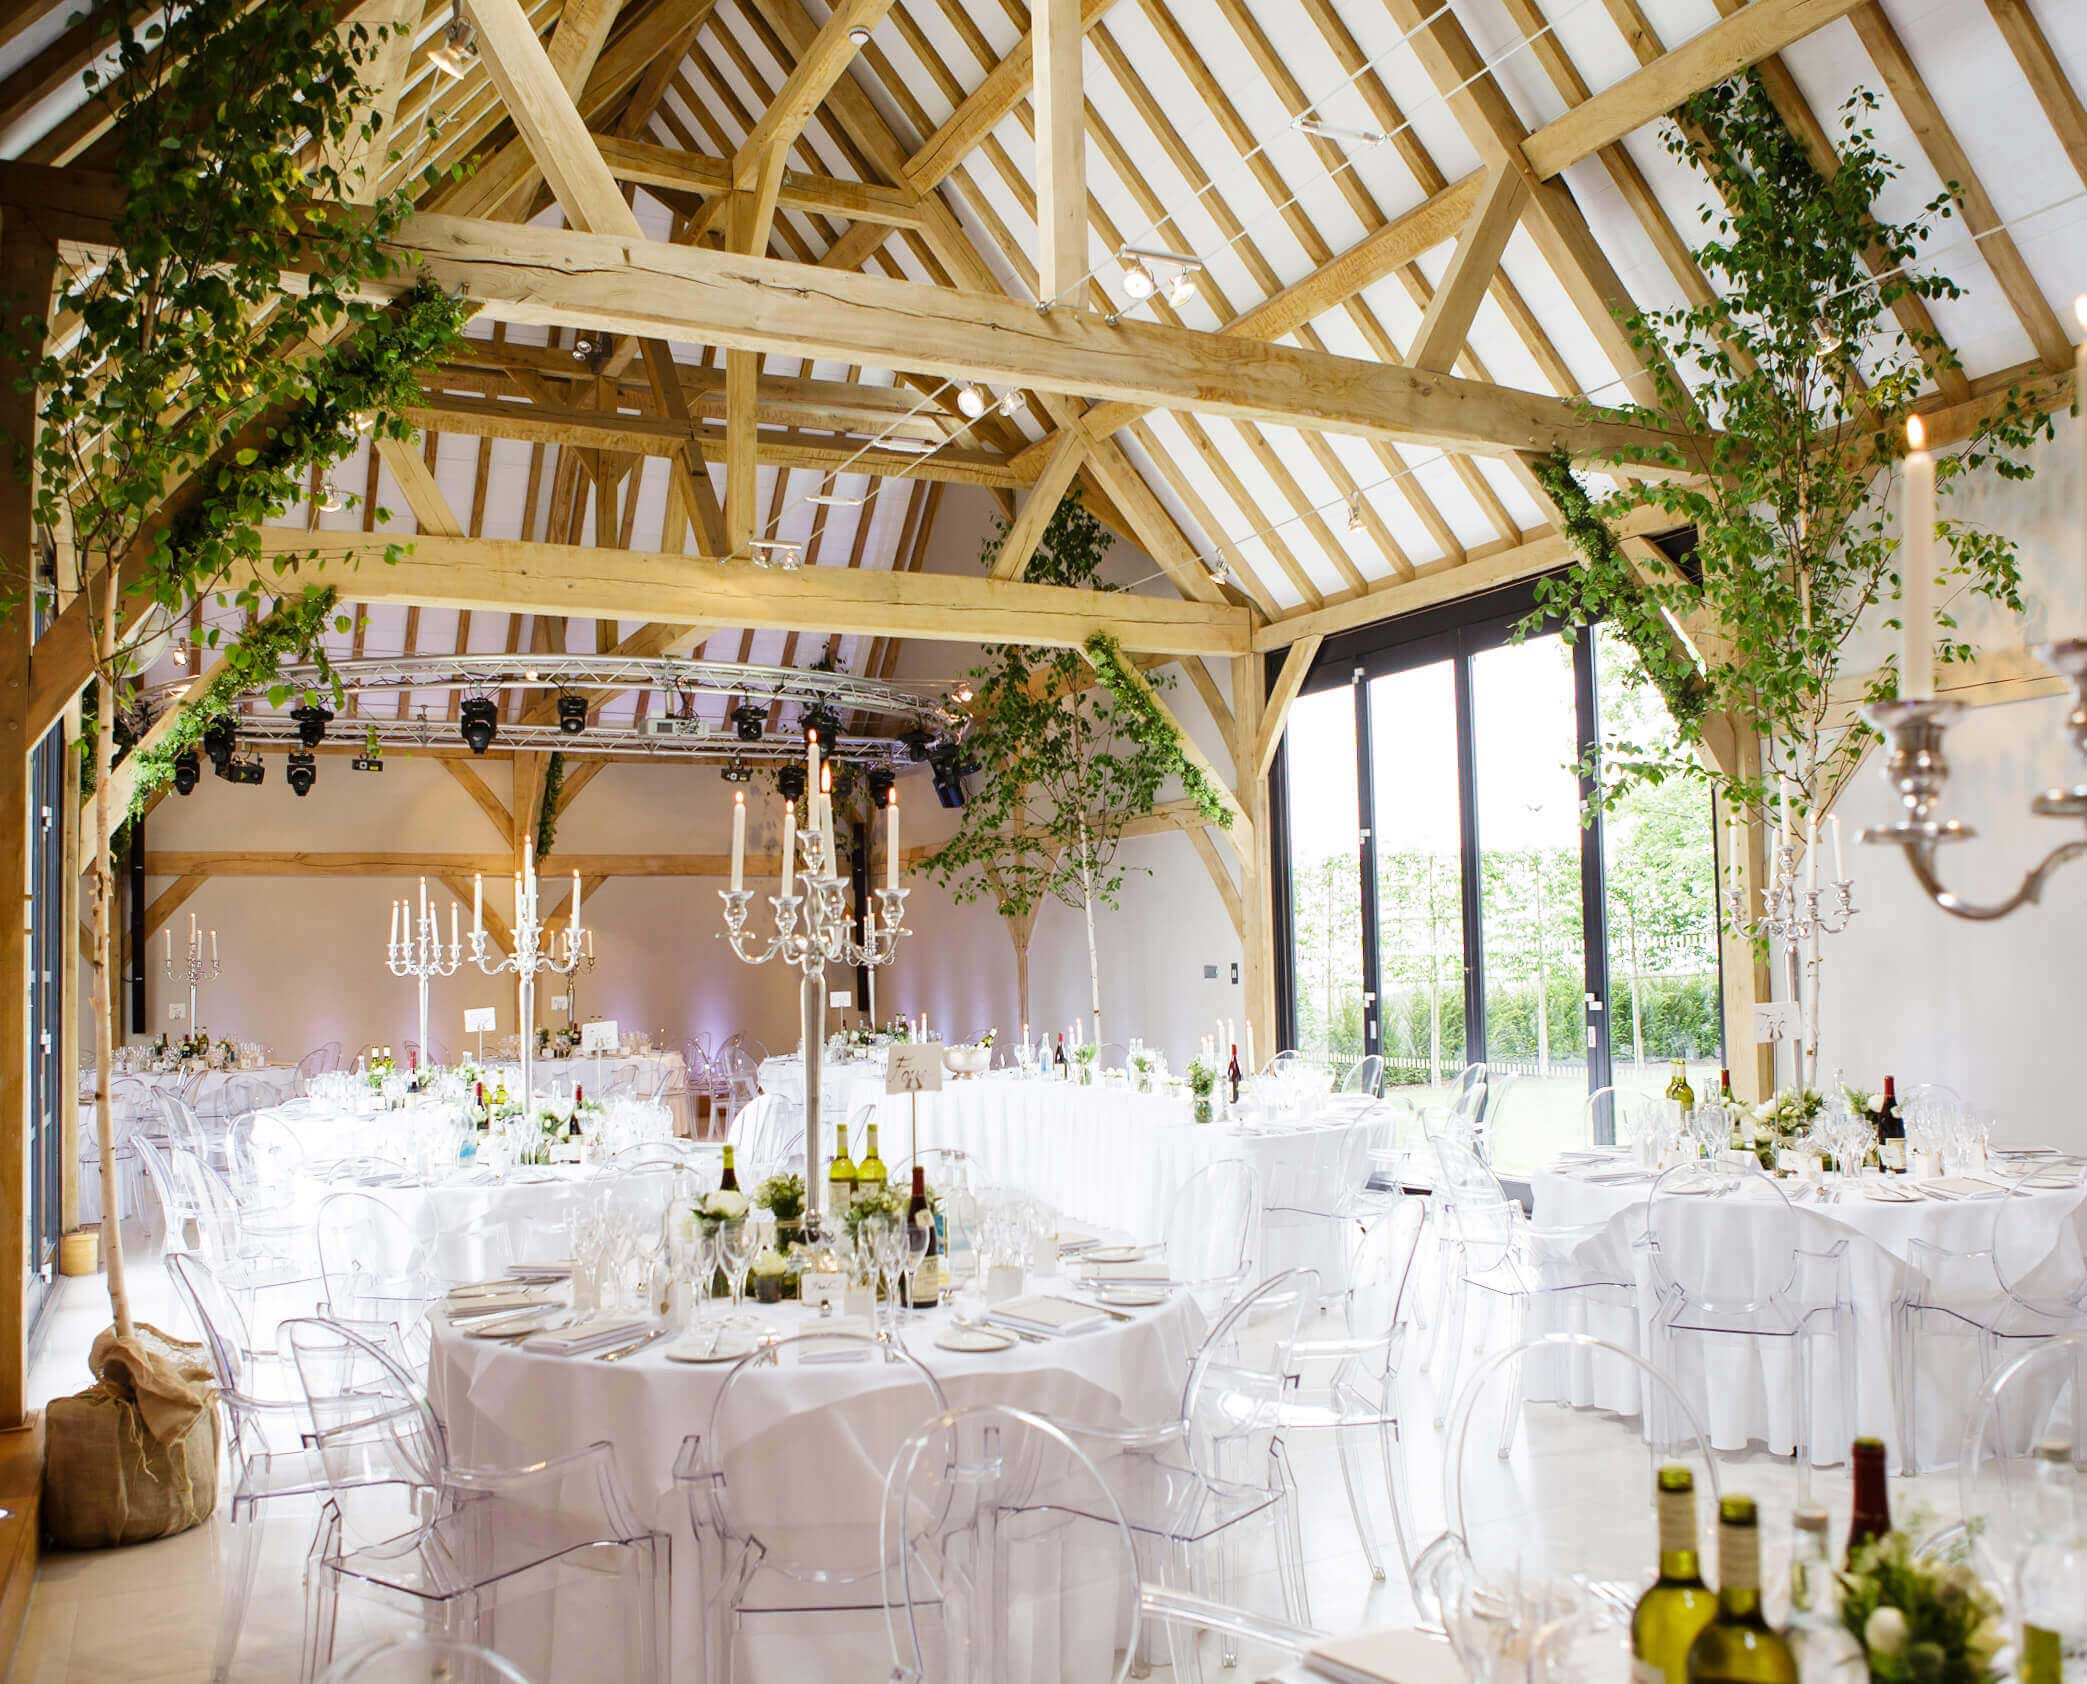 Late Availability Saturday 12th May 2018 Is Now Available As A Potential Date For Your Wedding With GBP1000 Off The Usual Venue Hire Rate